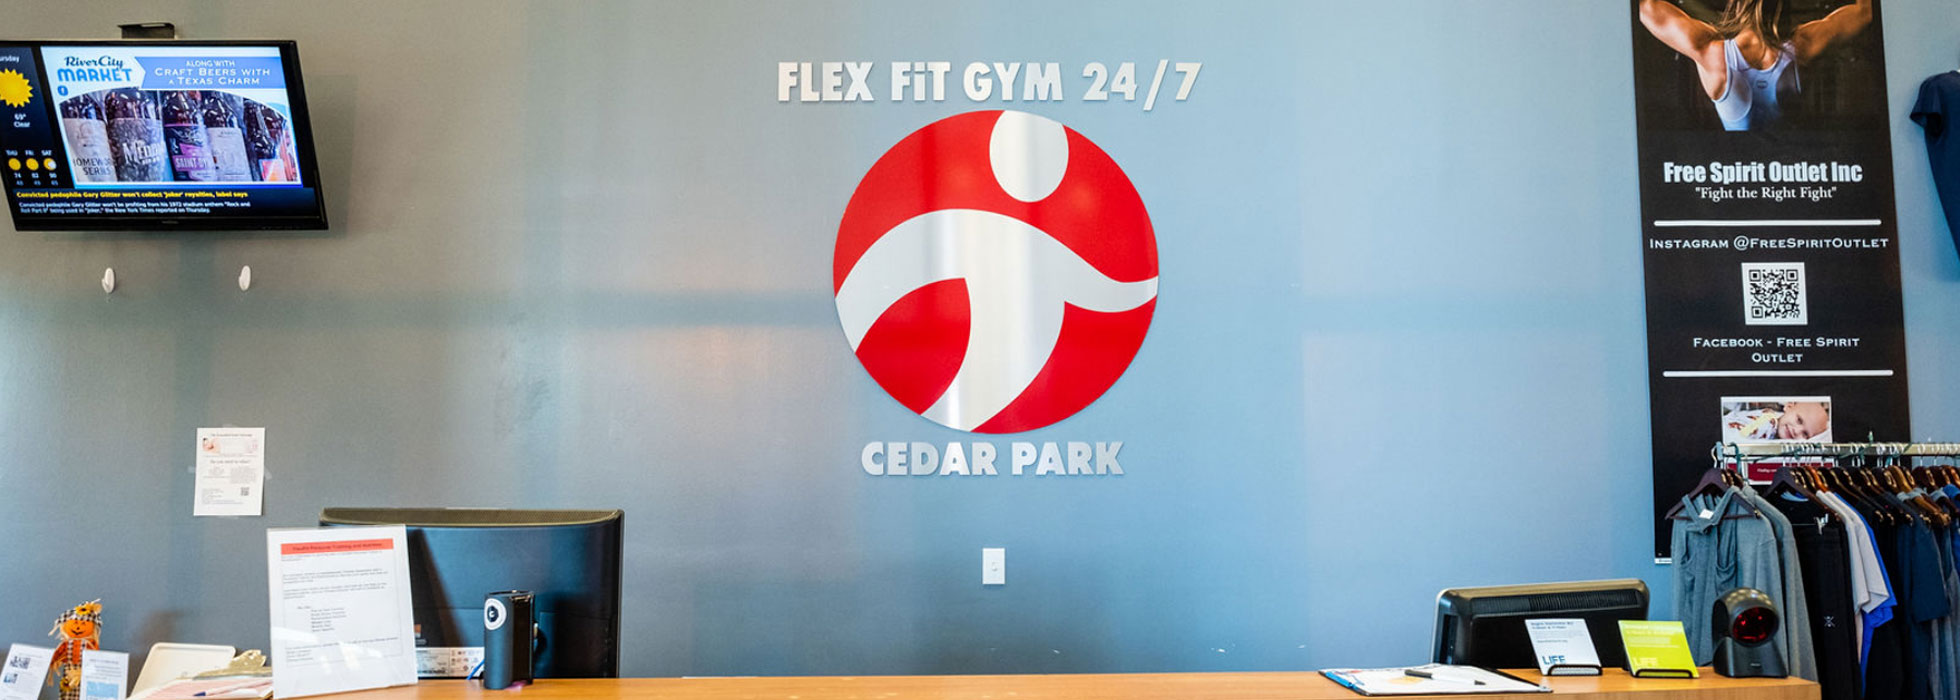 Flex Fit Gym is A 24/7 Gym in Cedar Park TX